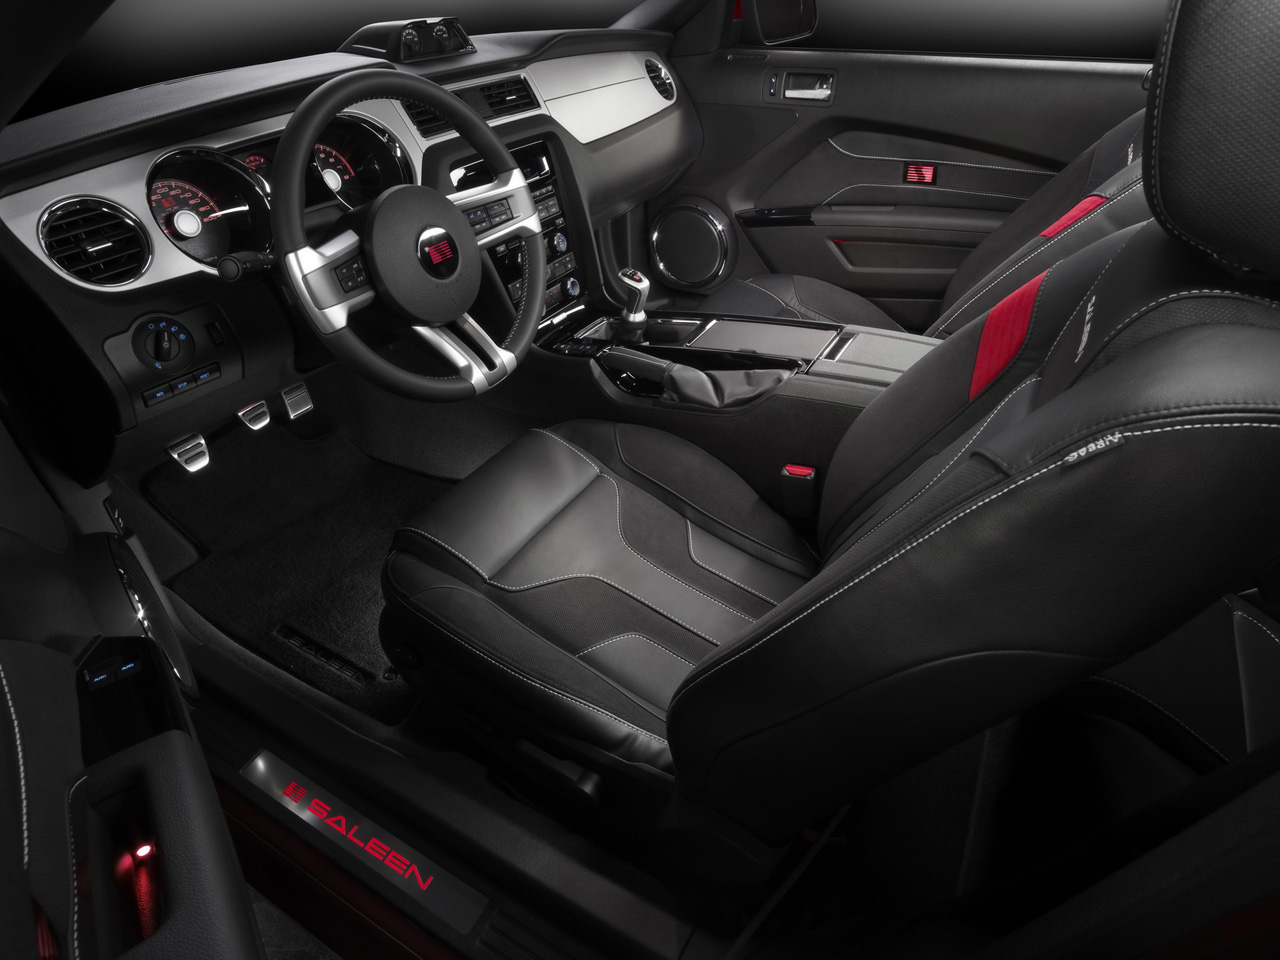 Click image for larger version  Name:2010-Saleen-Ford-Mustang-S281-Interior-1280x960.jpg Views:56 Size:282.6 KB ID:22741